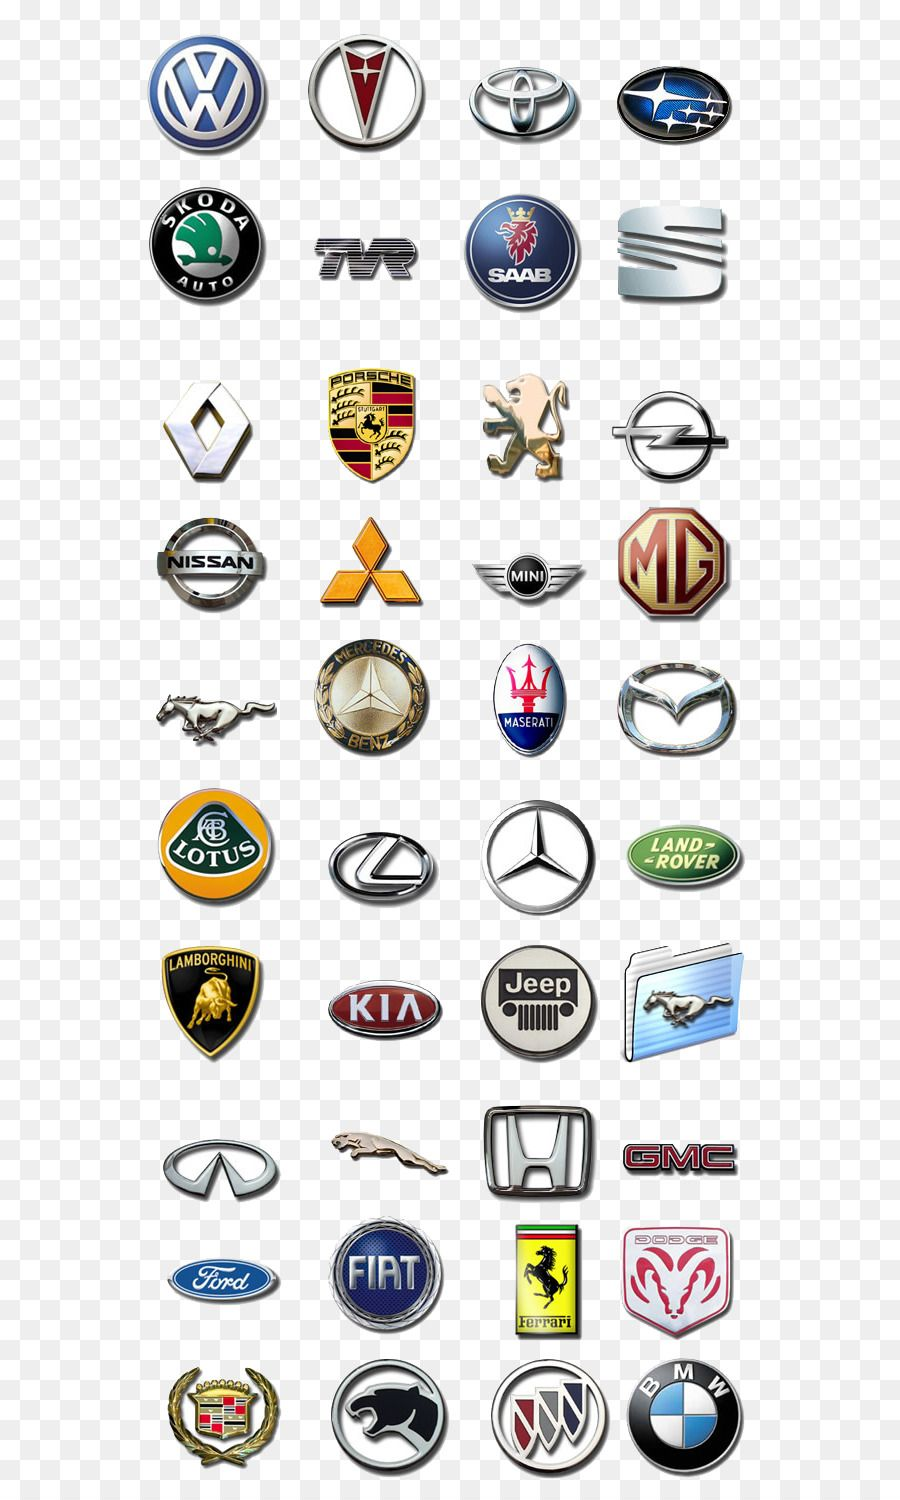 Maserati Logo Unlimited Download Cleanpng Com Luxury Car Logos Car Brands Logos Car Logos